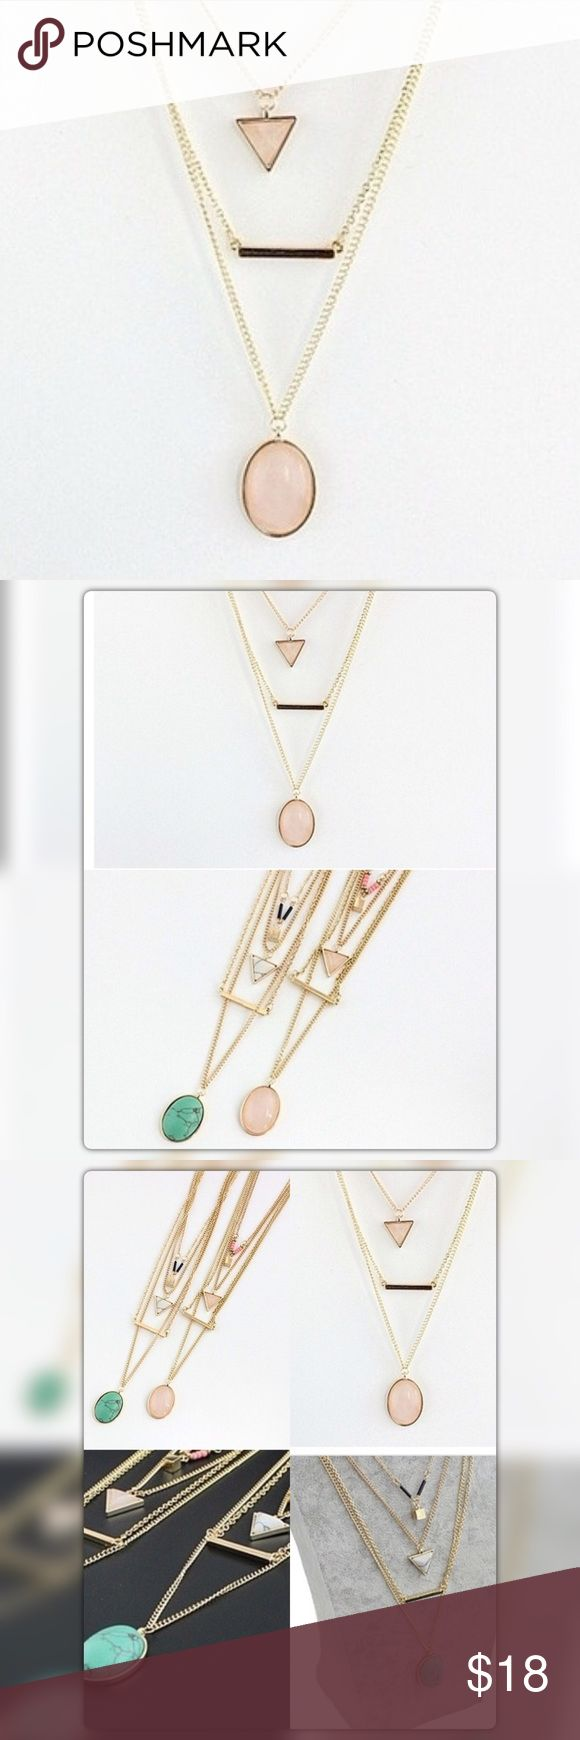 """Rose Quartz Olivia 4 Layered Necklace Gold plated chain. One necklace comes with Genuine Gemstone Rose Quartz Oval and pine triangle stone pendants, a golden bar and pink seed beads with a cute golden cube pendant.  necklaces measure as: The first layer chain is 16"""" long; the second chain is 18"""" long, the third chain is 22"""" long and the fourth chain is 24"""" long. The pendants measure 1.1"""" long Jewelry Necklaces"""